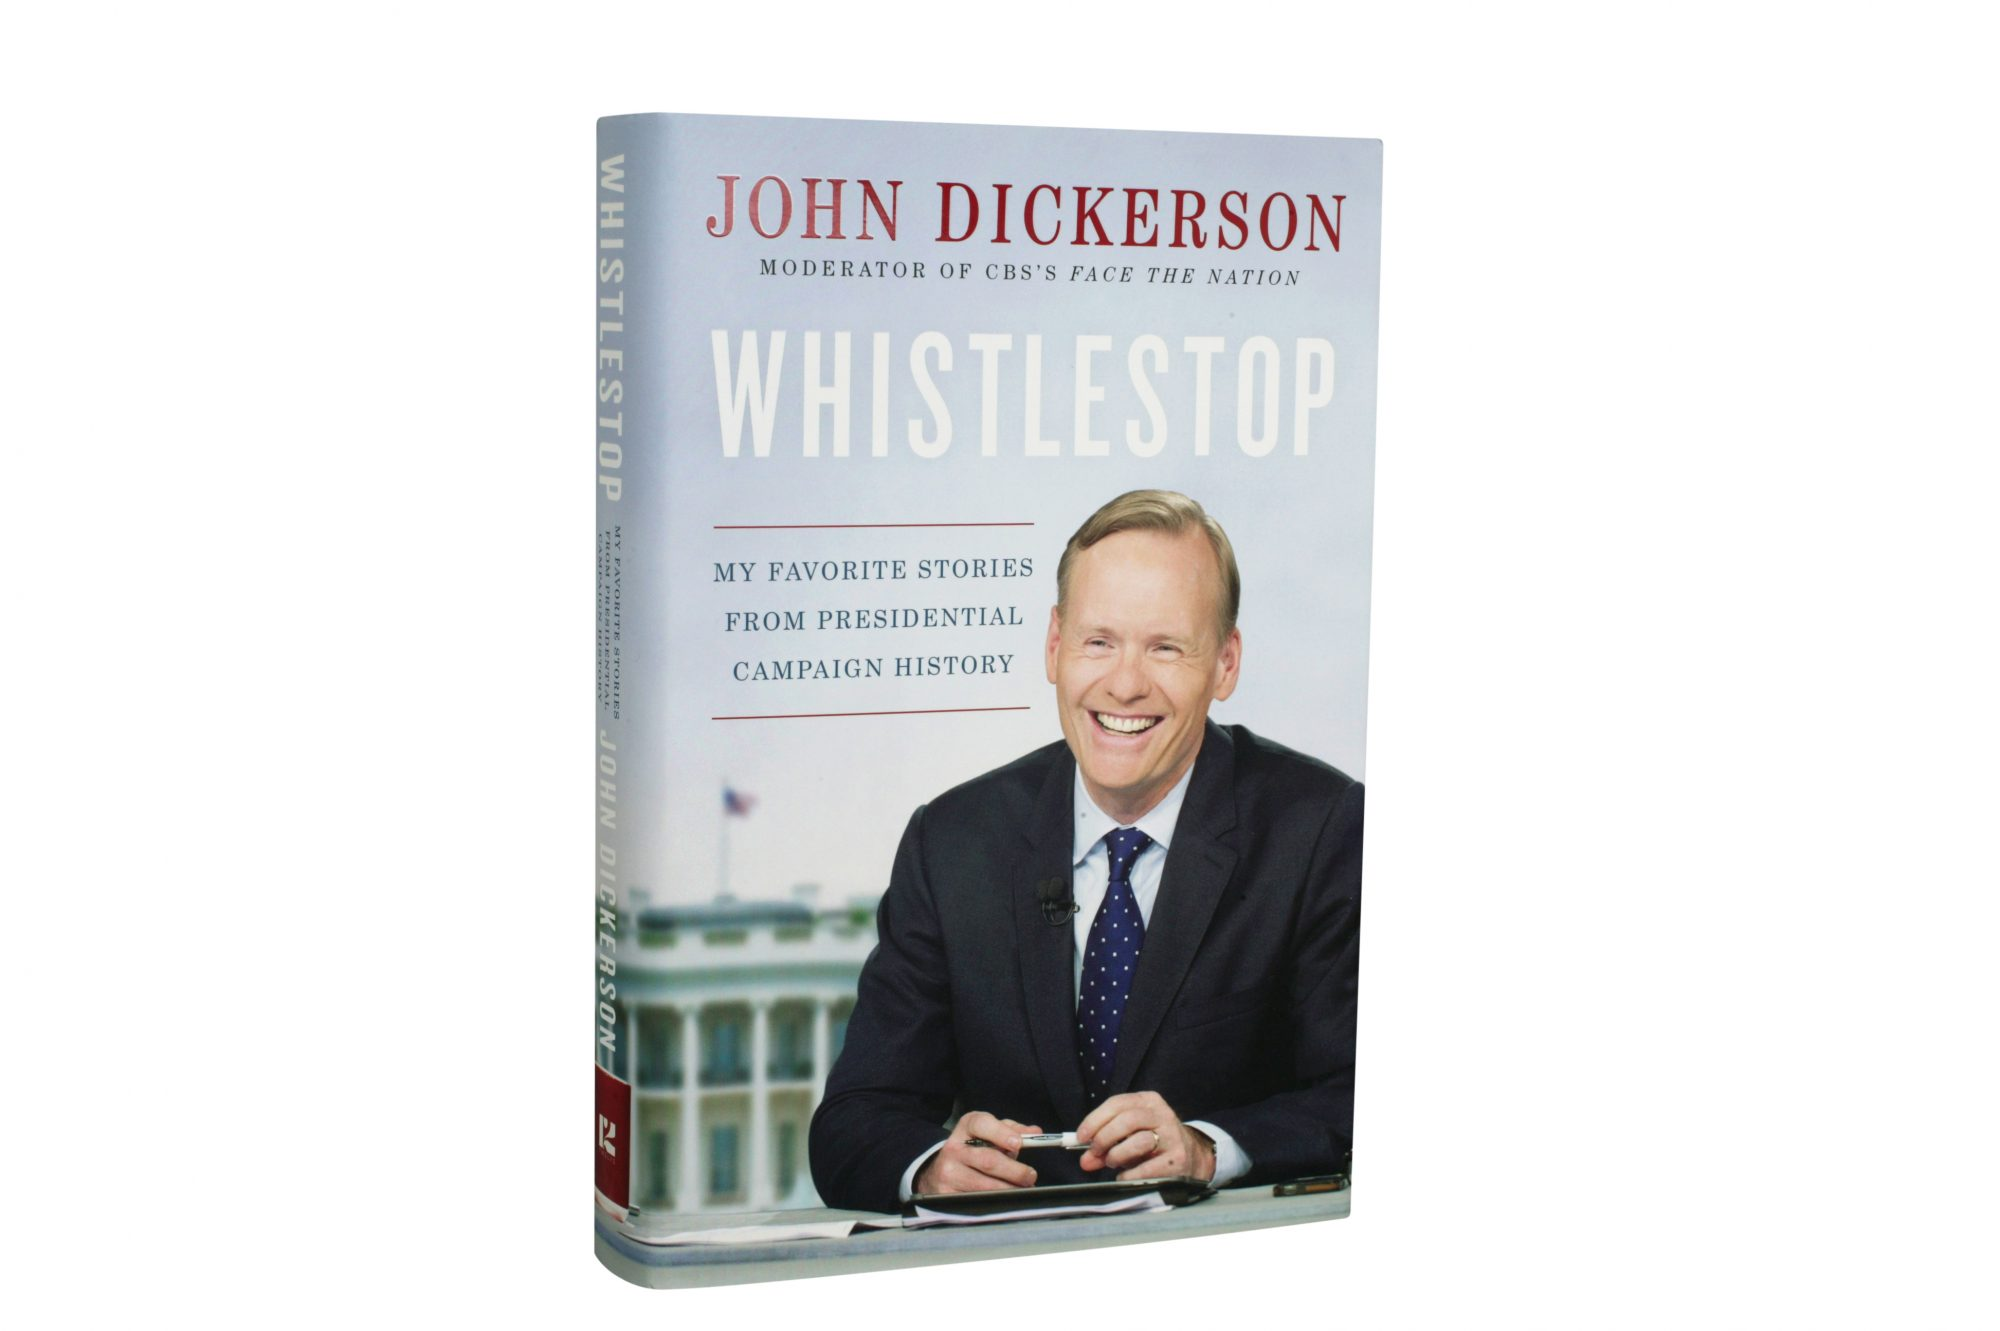 WHISTLESTOP BY JOHN DICKERSON